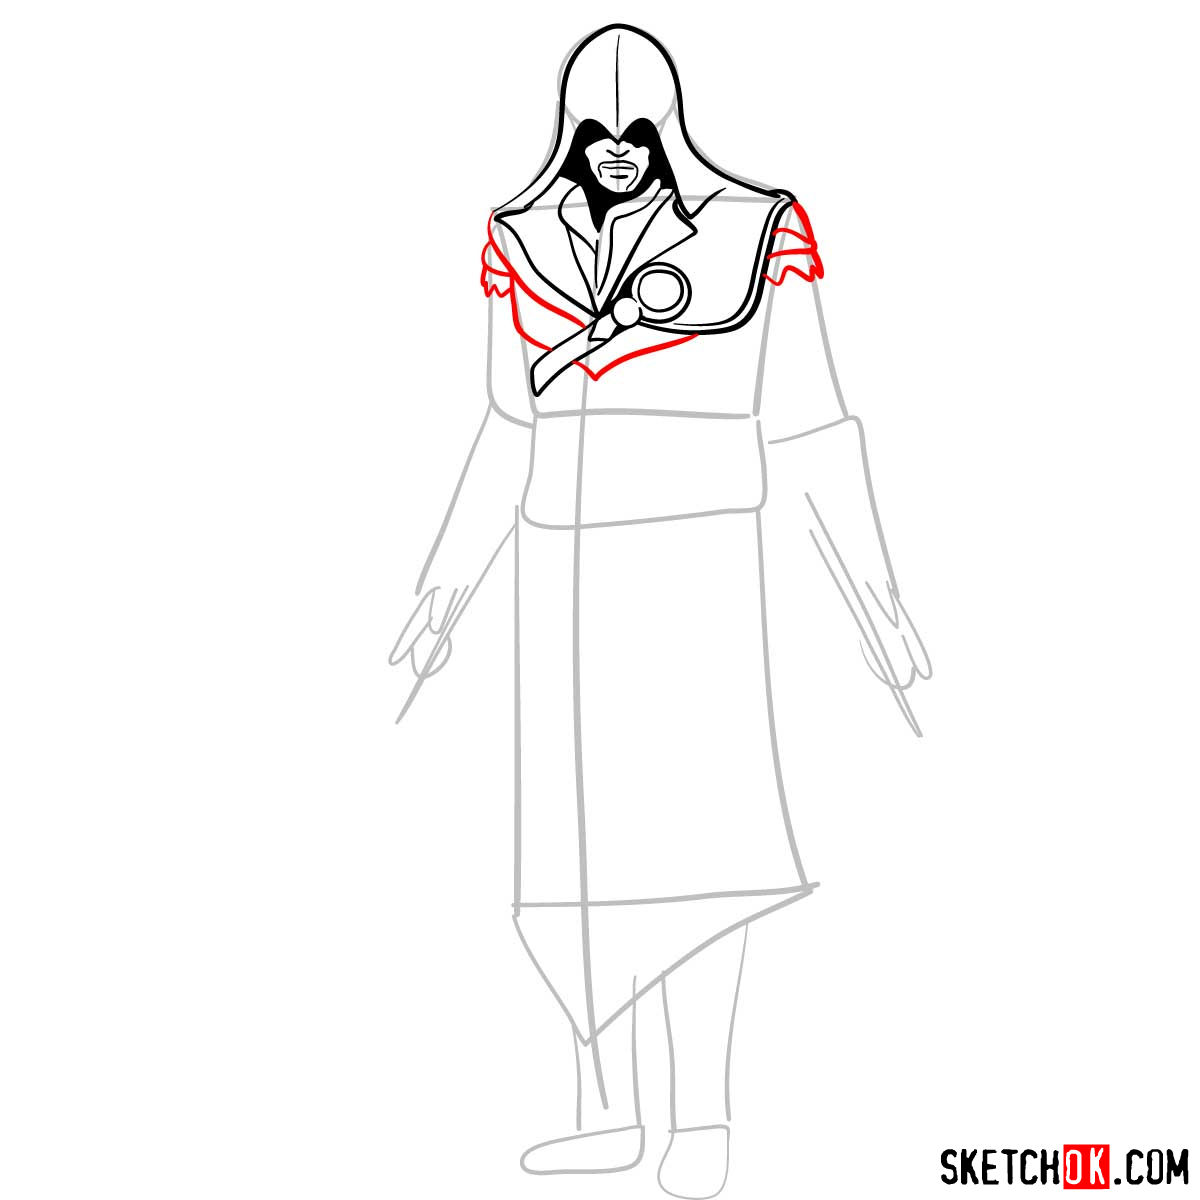 How to draw an Assassin from Assassin's Creed game - step 07